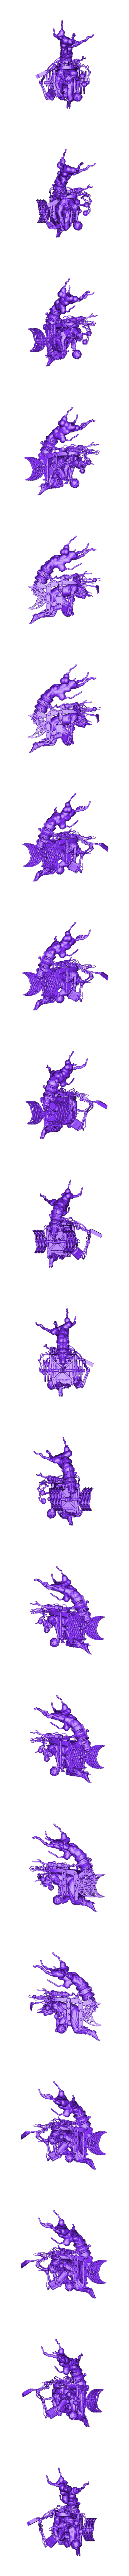 Zakolt_Elder_Smoke.stl Download free STL file Zakolt Elder • 3D printable template, BellForged